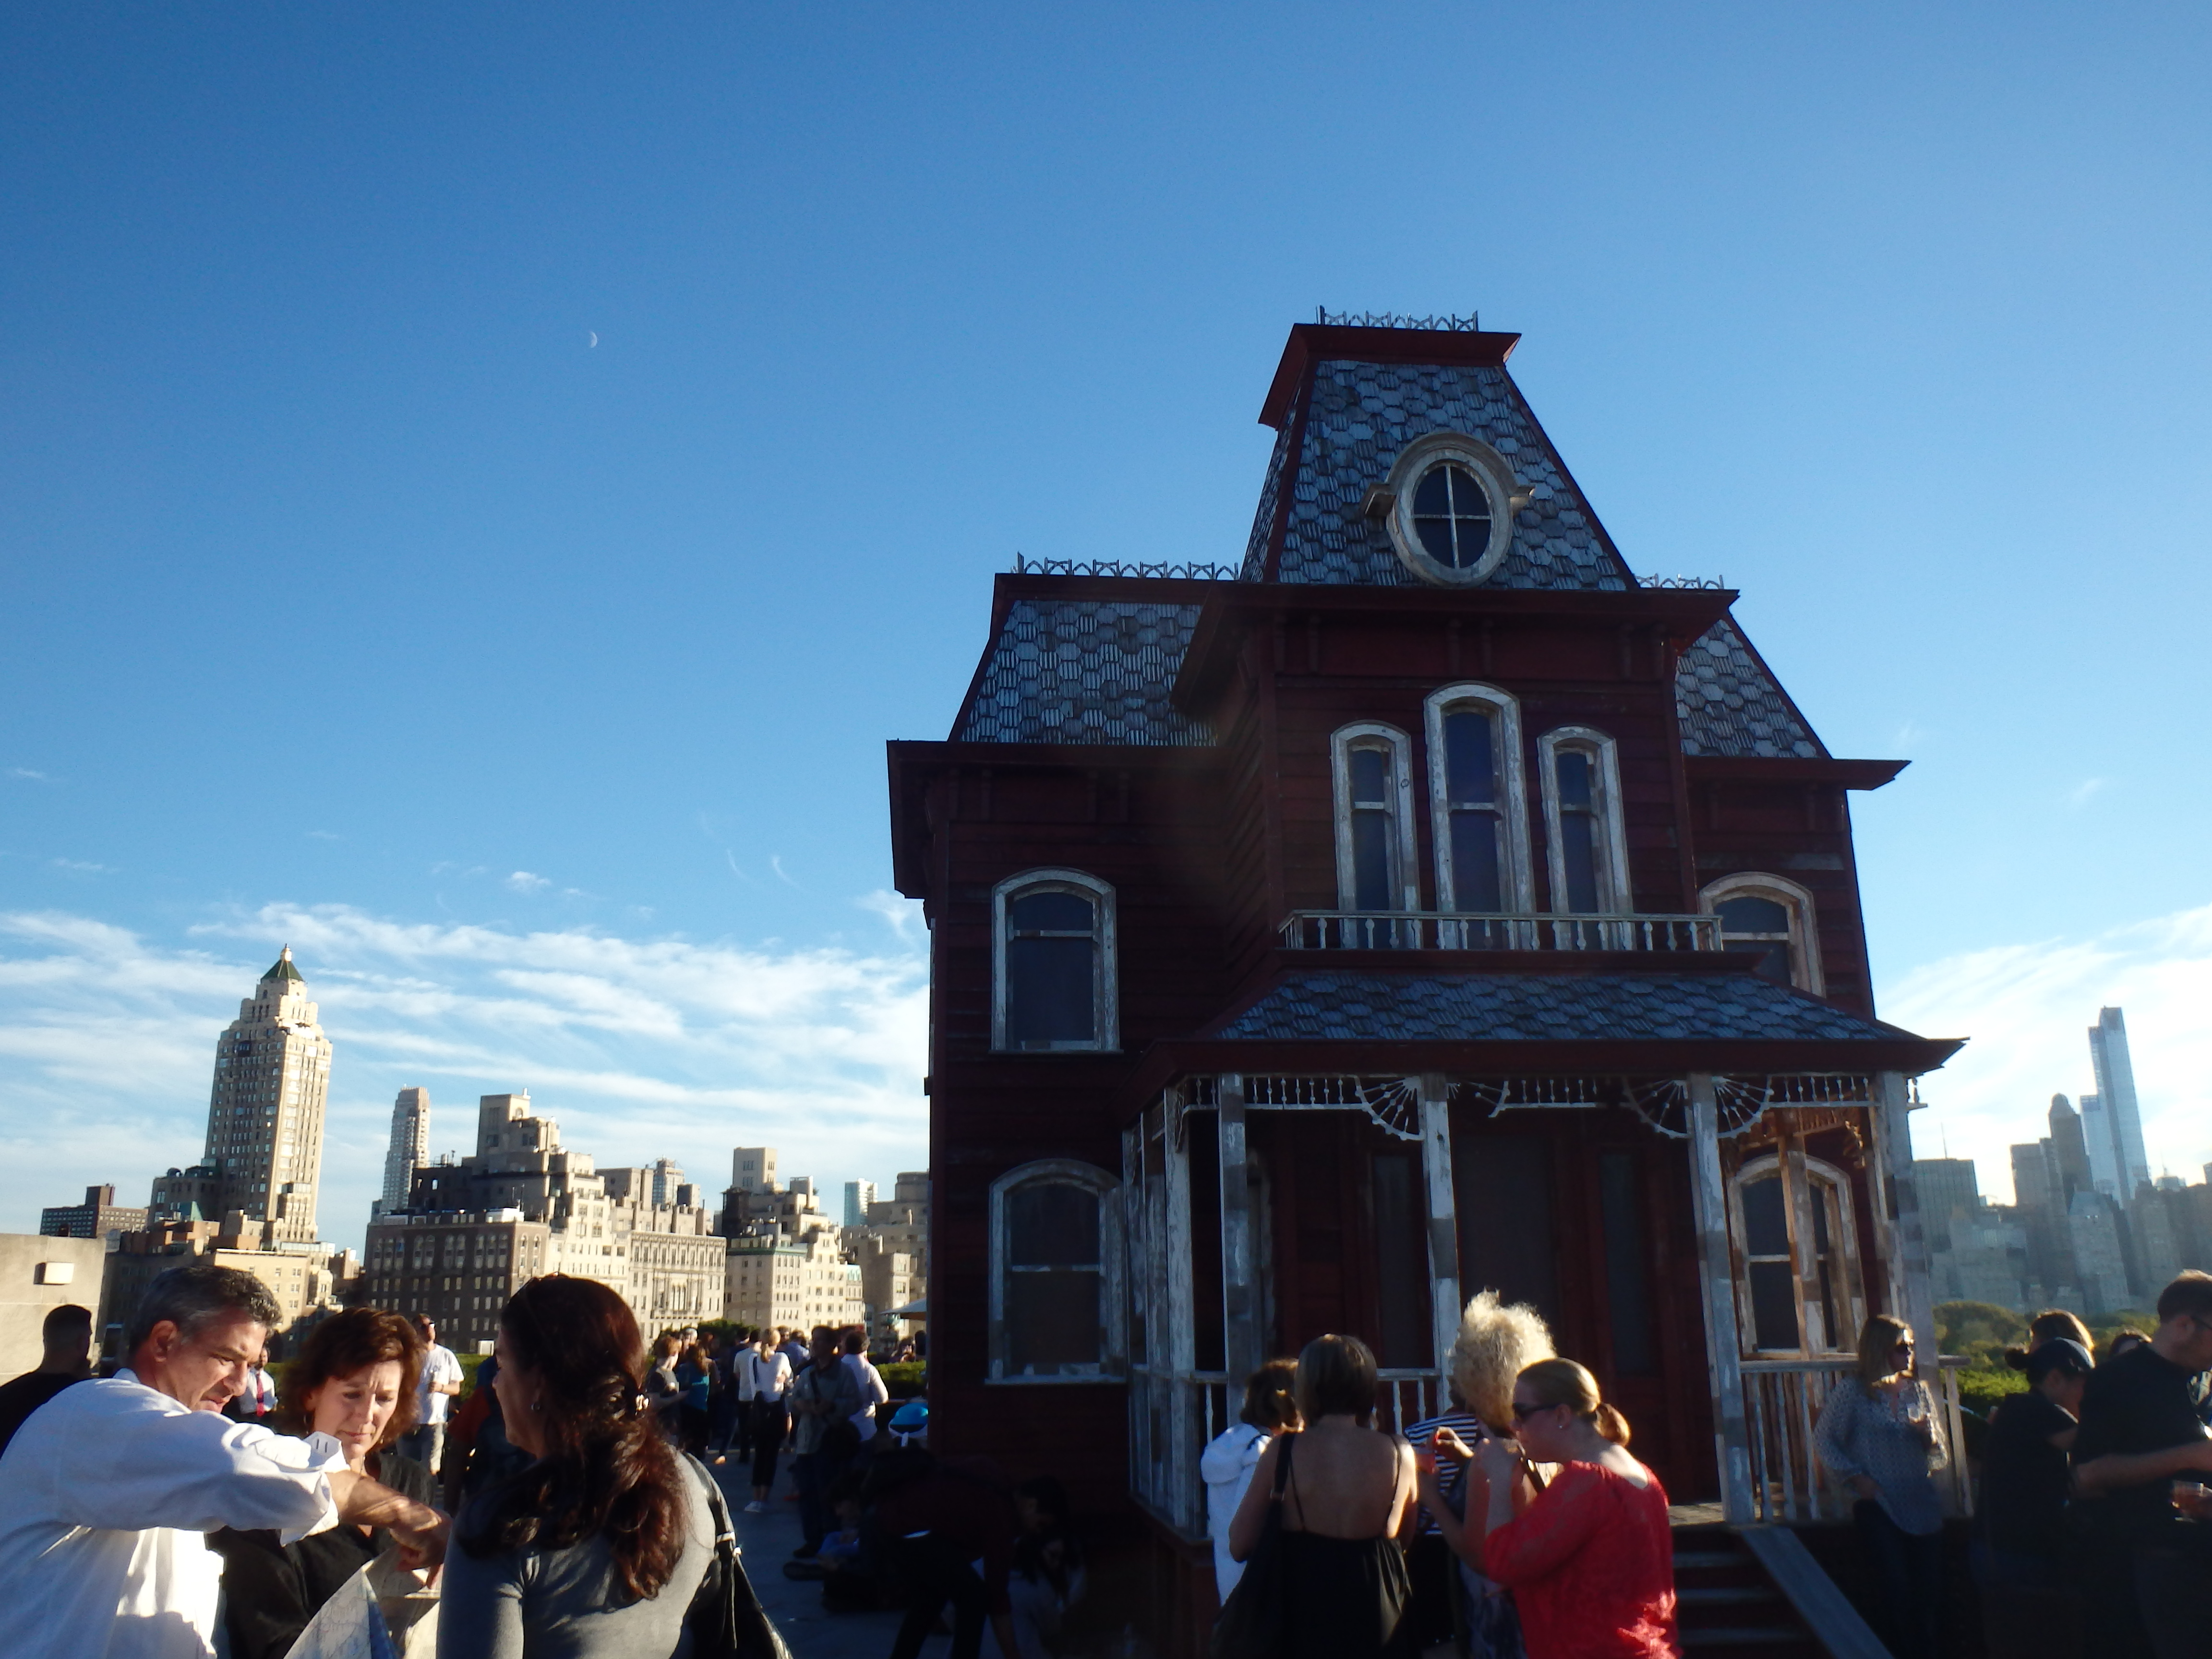 Psycho house on the MET